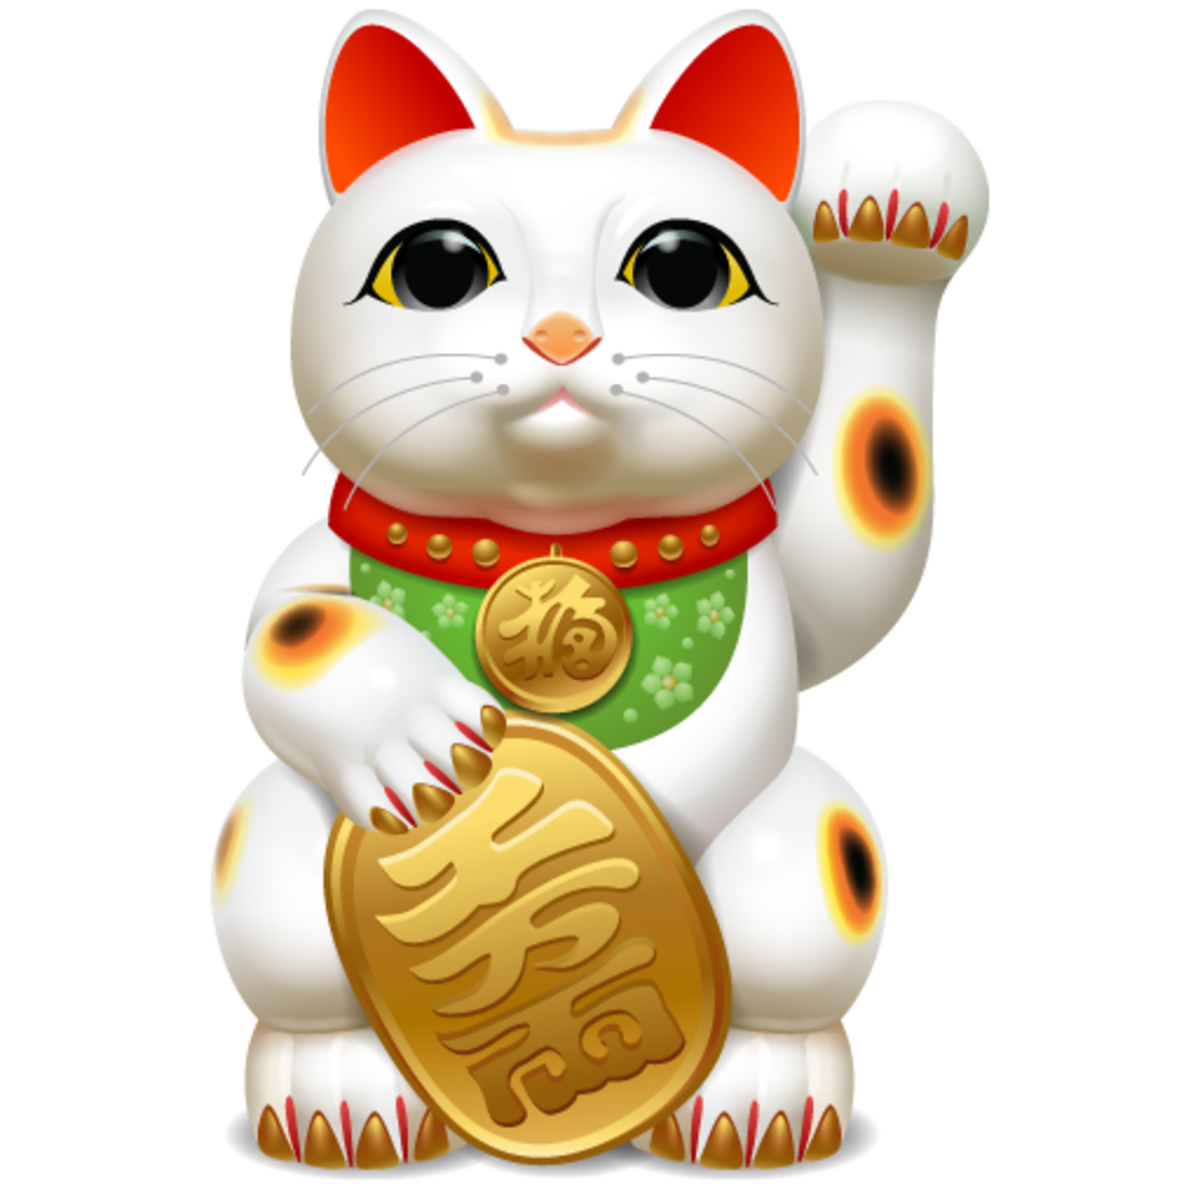 The higher the paw is raised, the more wealth, luck and prosperity Maneki Neko will bring you. The coin attracts wealth